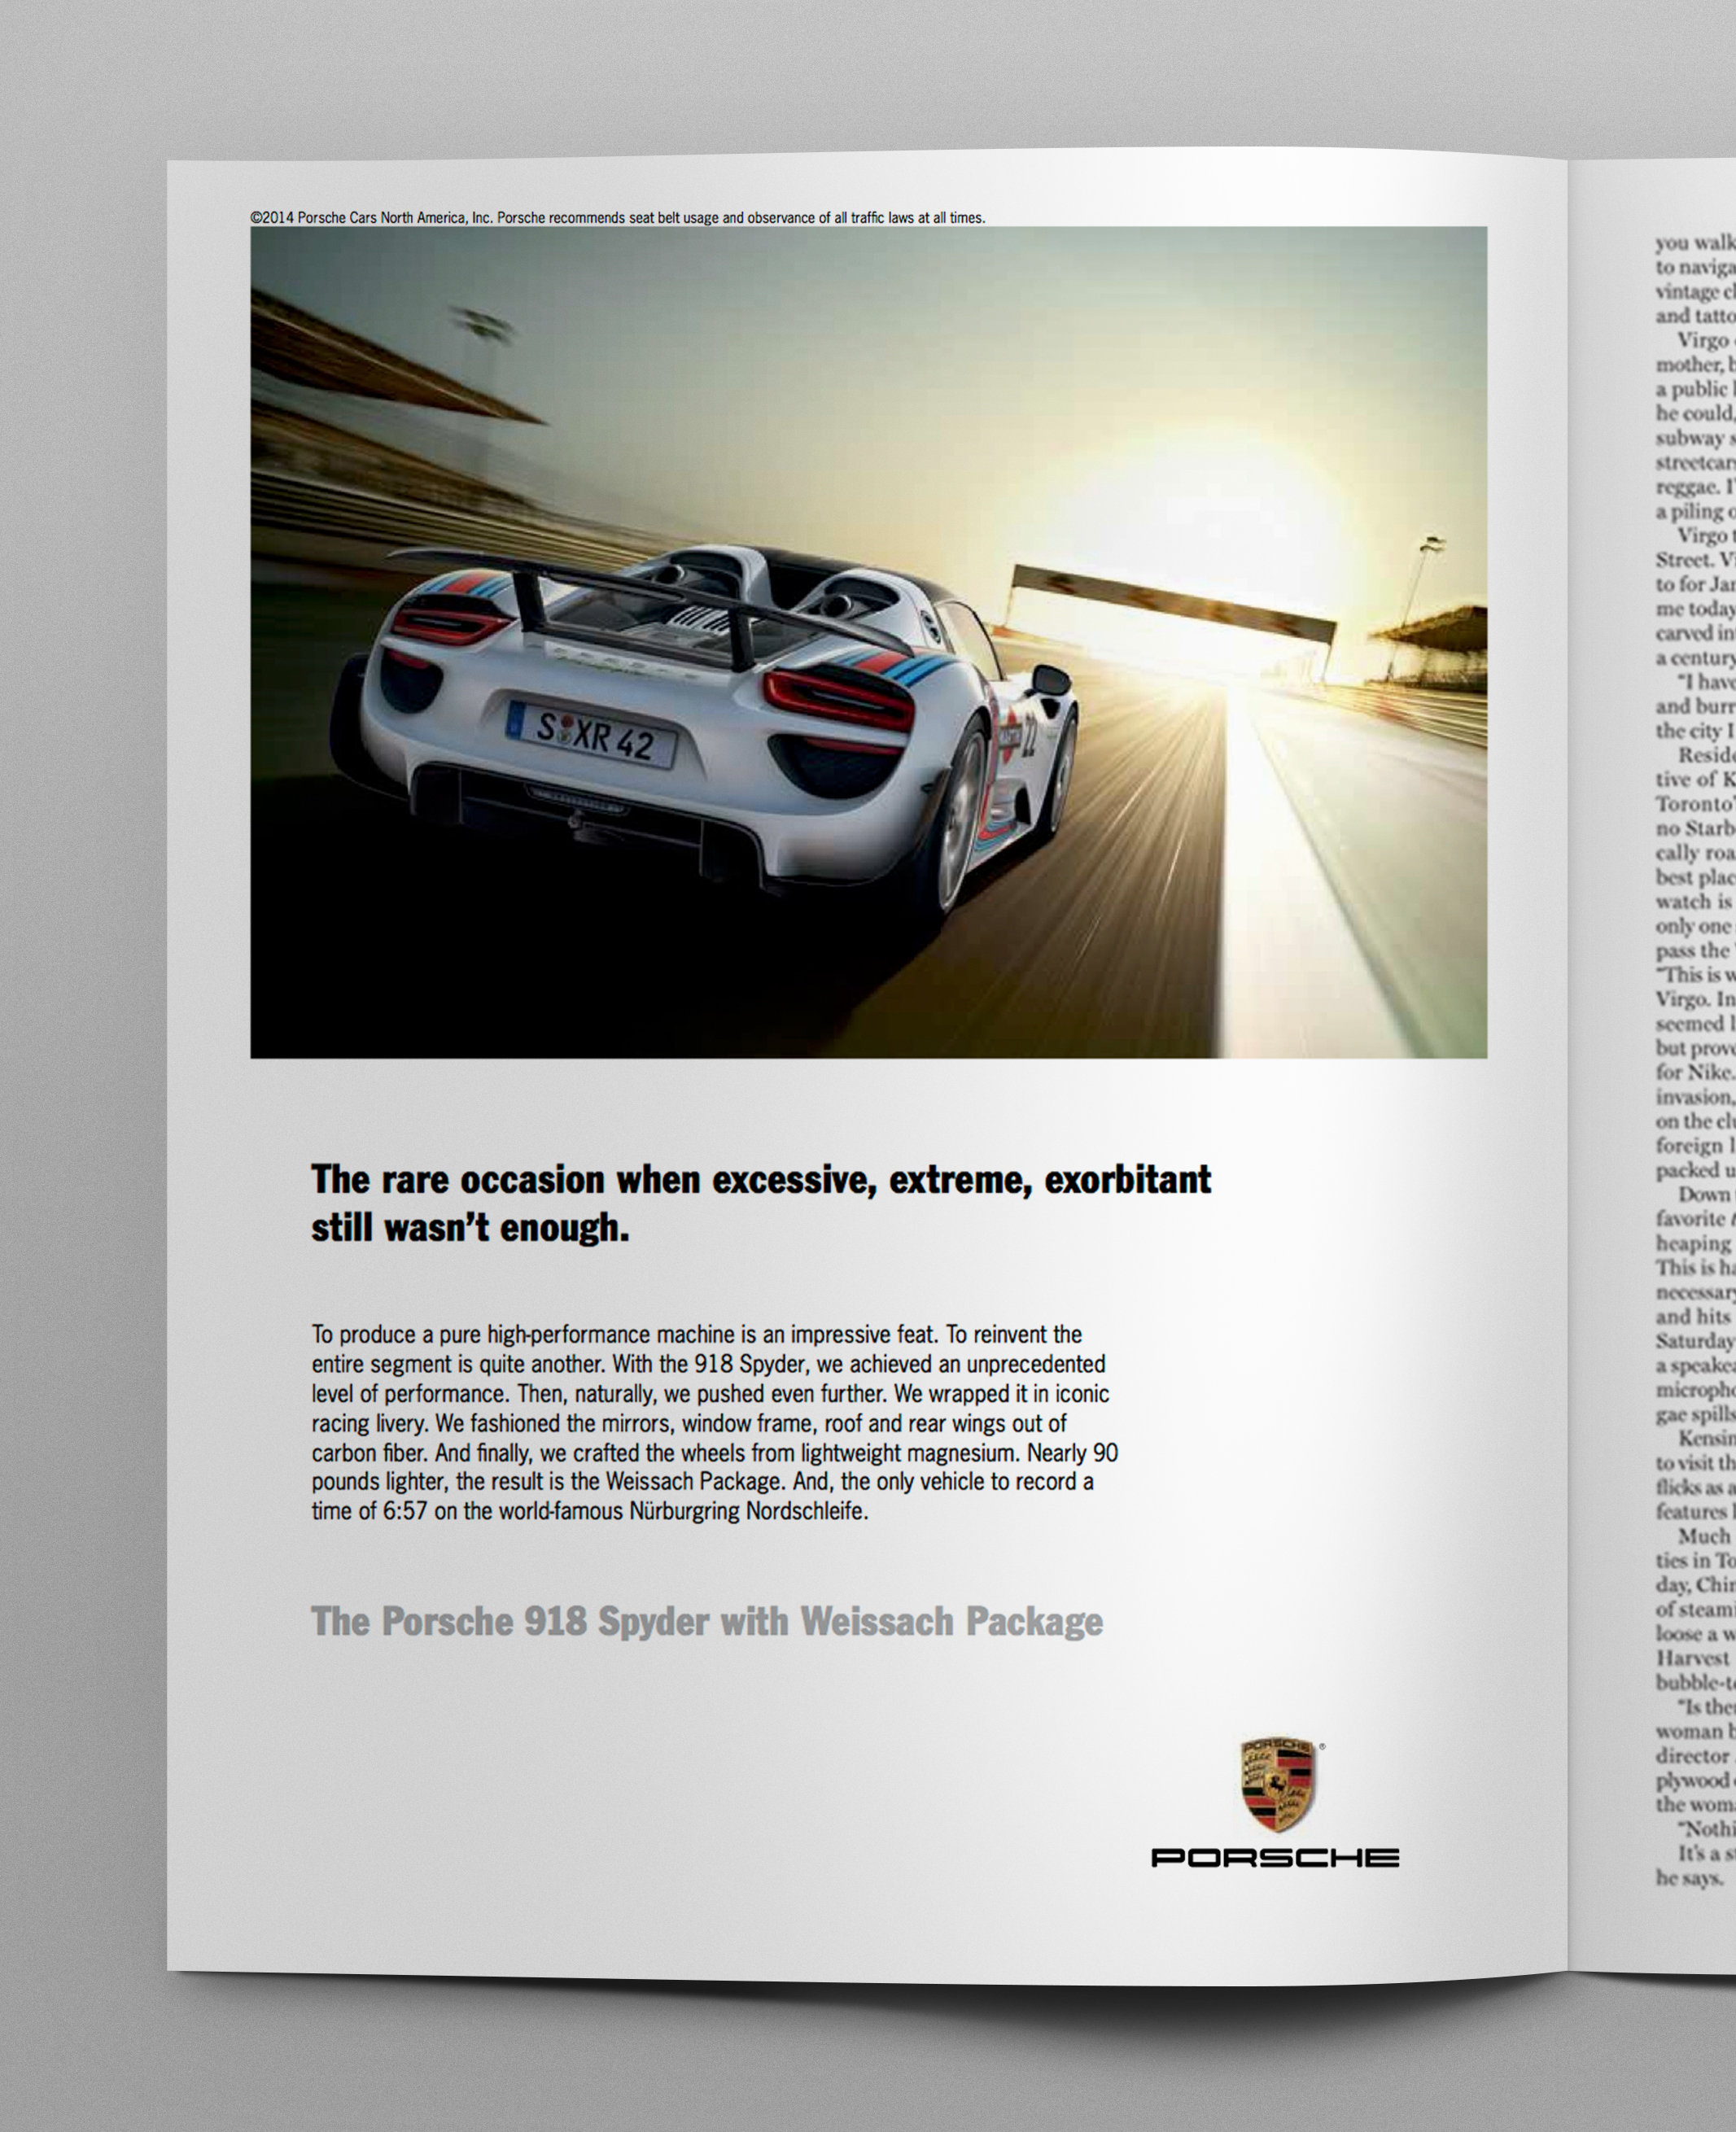 Headline:  The rare occasion when excessive, extreme, exorbitant still wasn't enough.   Body copy:   To produce a pure high-performance machine is an impressive feat. To reinvent the entire segment is quite another. With the 918 Spyder, we achieved an unprecedented level of performance. Then, naturally, we pushed even further. We wrapped it in iconic racing livery. We fashioned the mirrors, window frame, roof and rear wings out of carbon fiber. And finally, we crafted the wheels from lightweight magnesium. Nearly 90 pounds lighter, the result is the Weissach Package. And, the only vehicle to record a time of 6:57 on the world-famous Nürburgring Nordschleife.